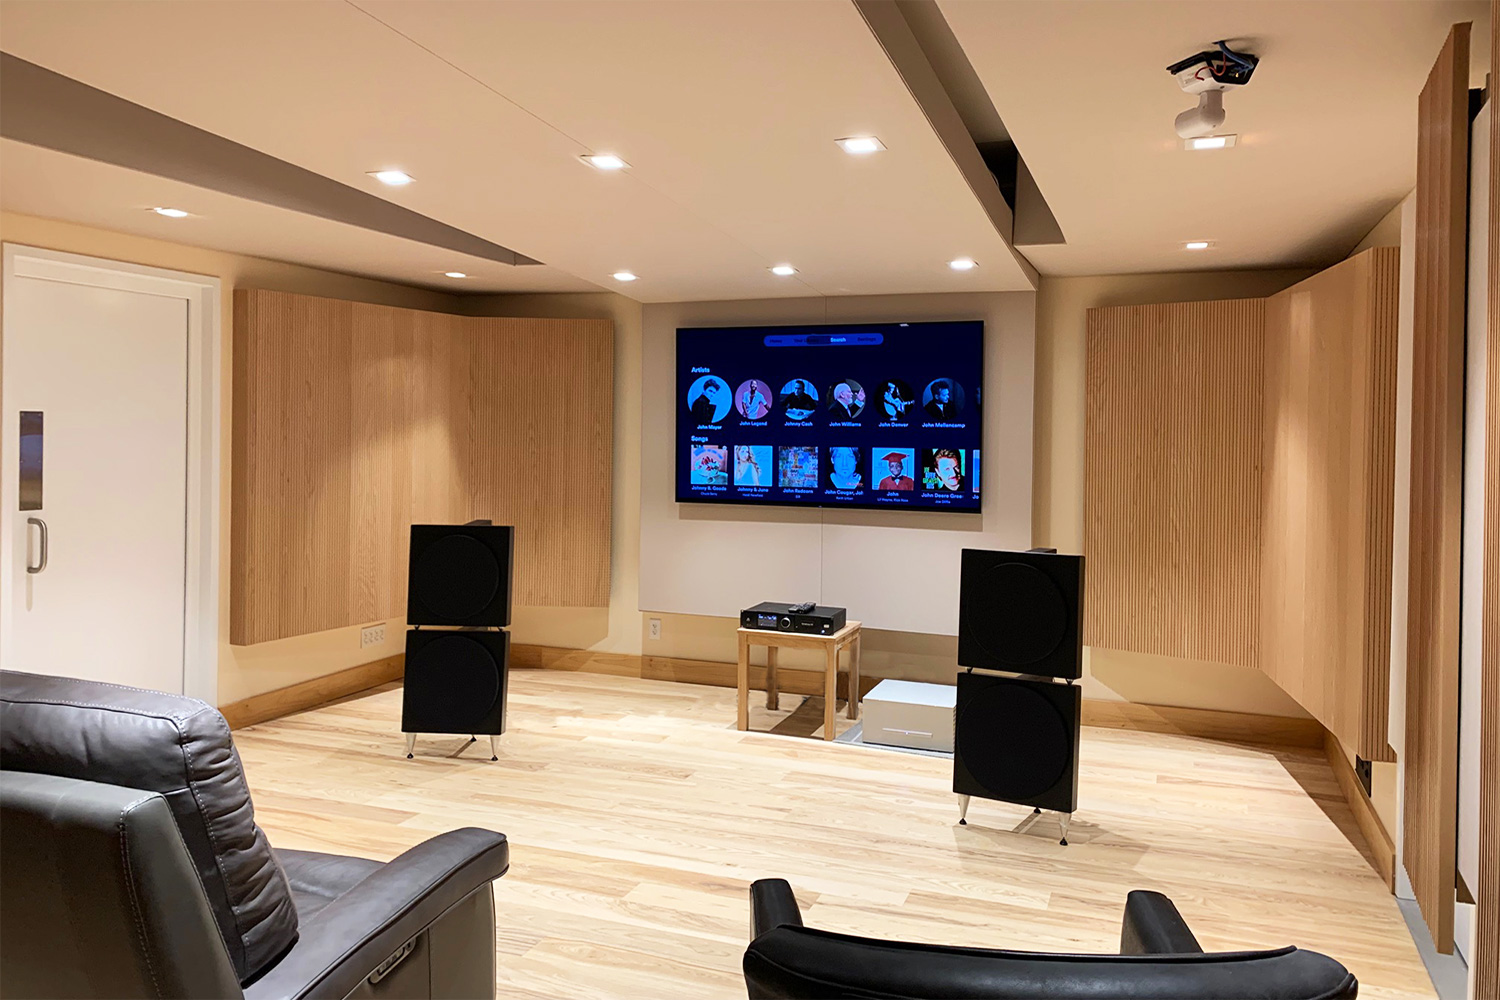 Luxury minimalistic audiophile listening room in a private residence in upstate New York. Acoustic isolation and A/V Systems design by WSDG. Listening Room front.